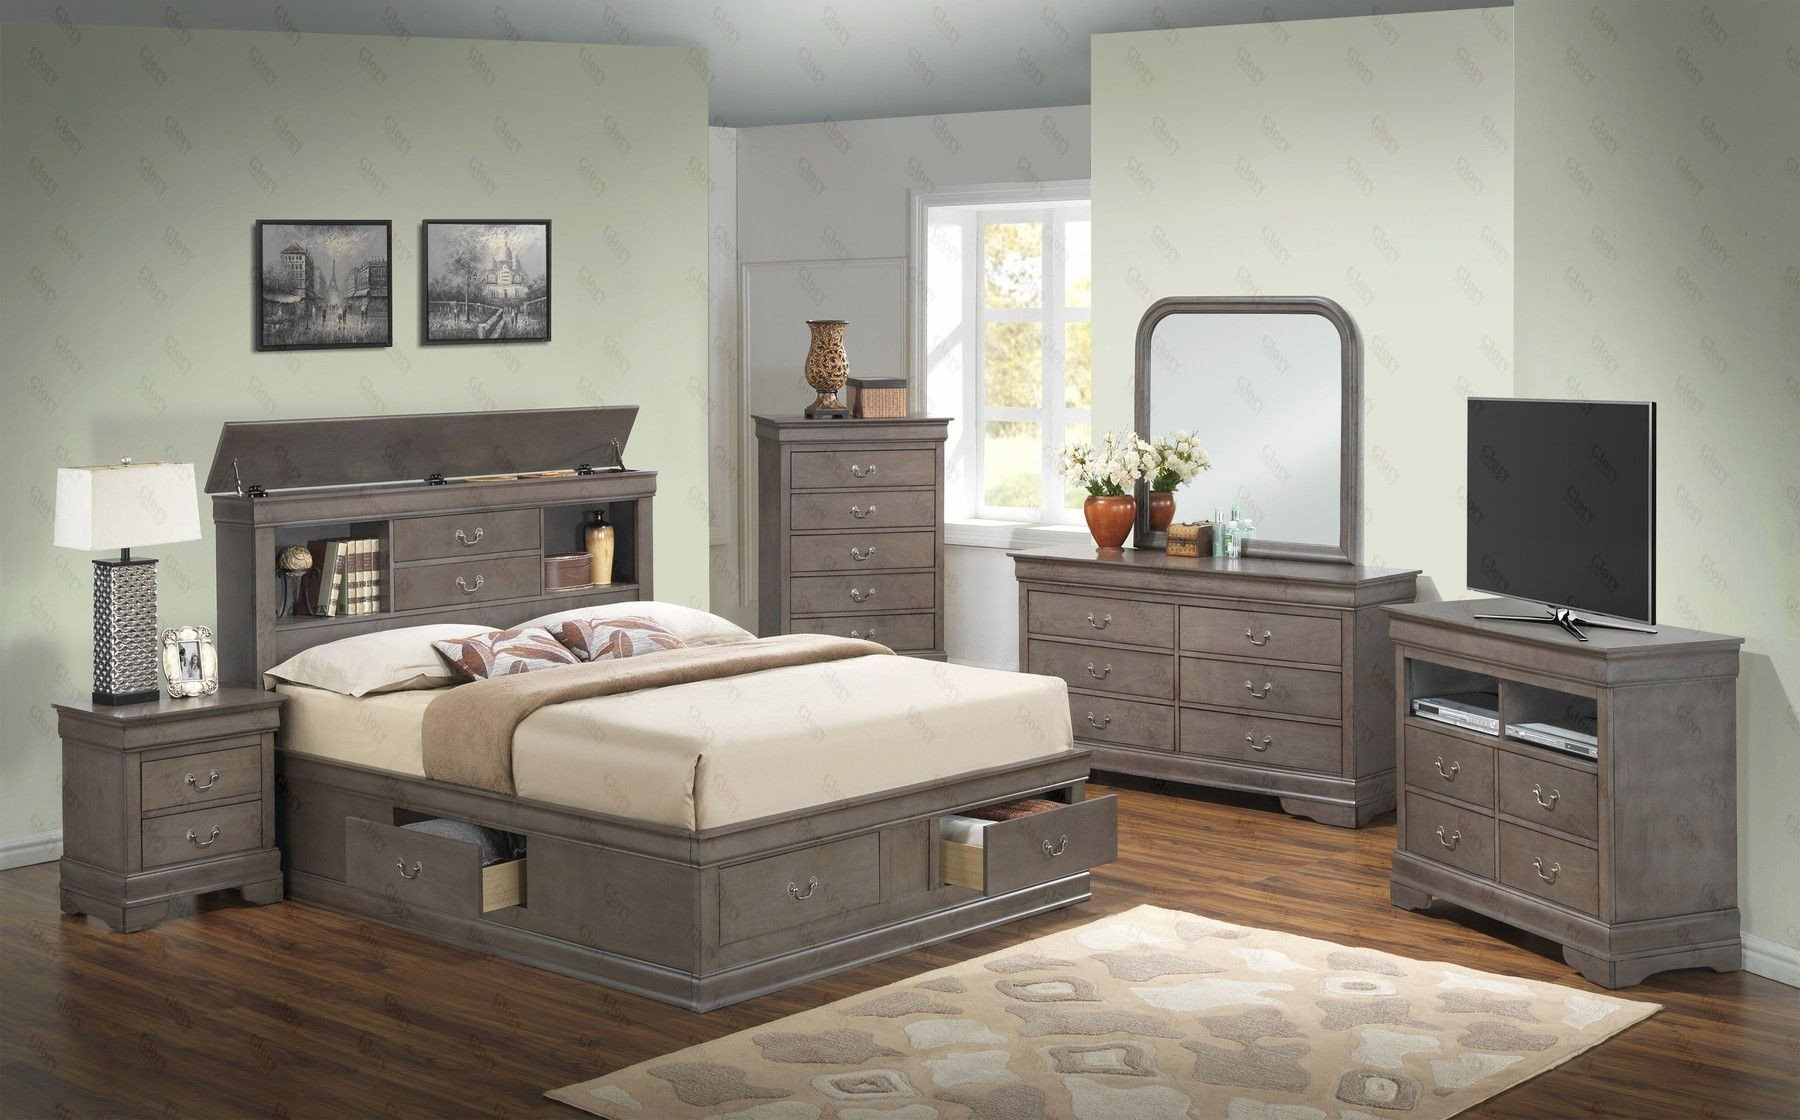 Louis Philippe Bedroom Set Best Of Louis Philippe B King Set Gray King Size B 2ns Dr Mr Ch